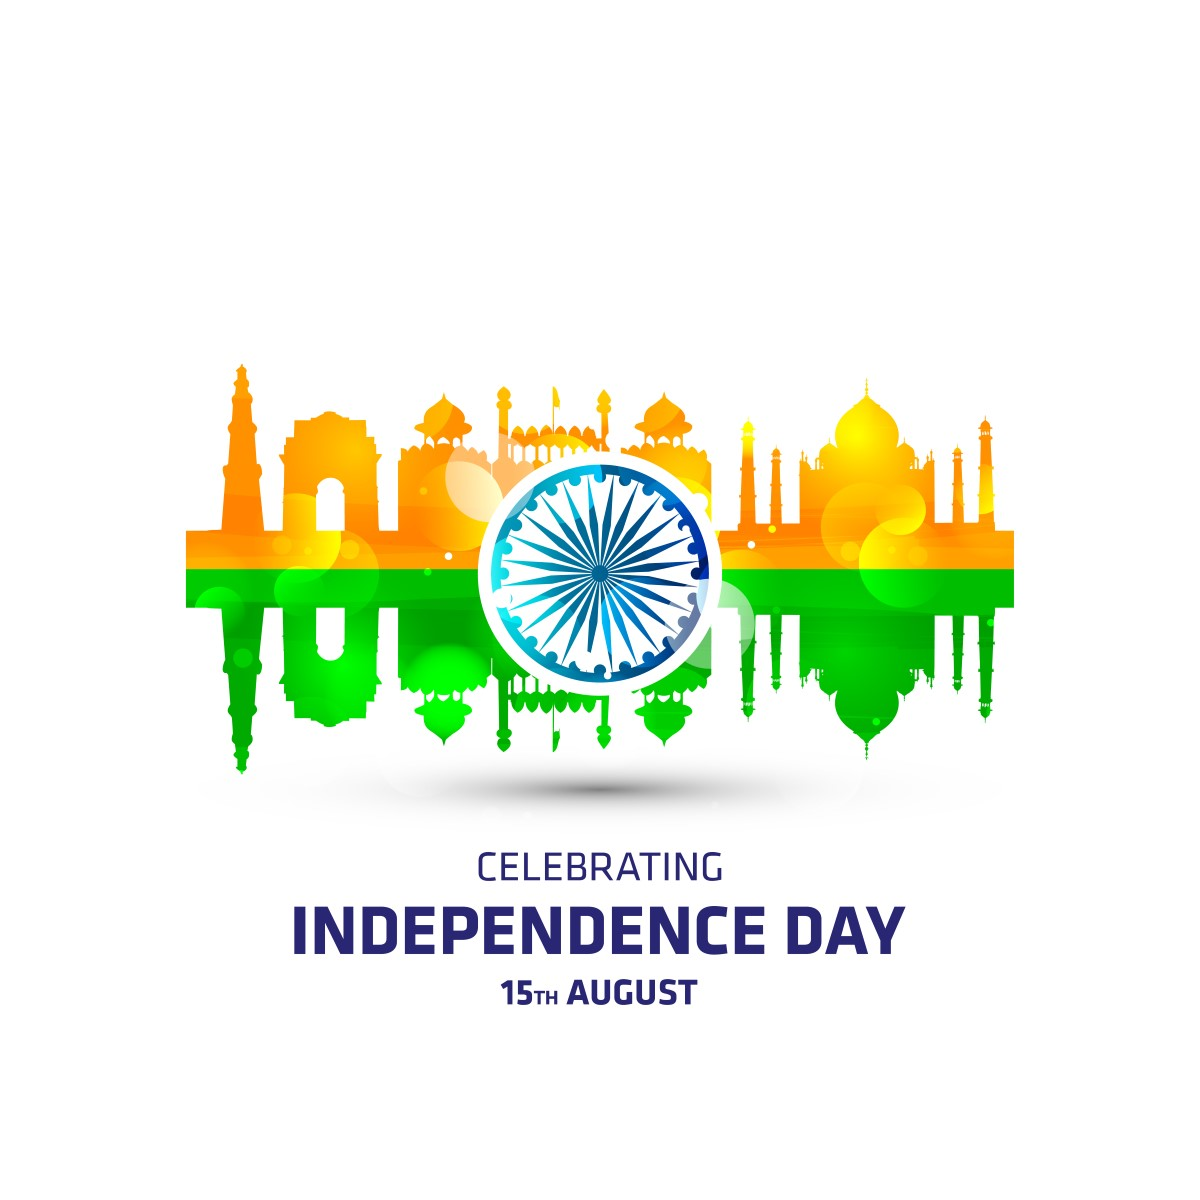 15th august 2021 independence day hd poster